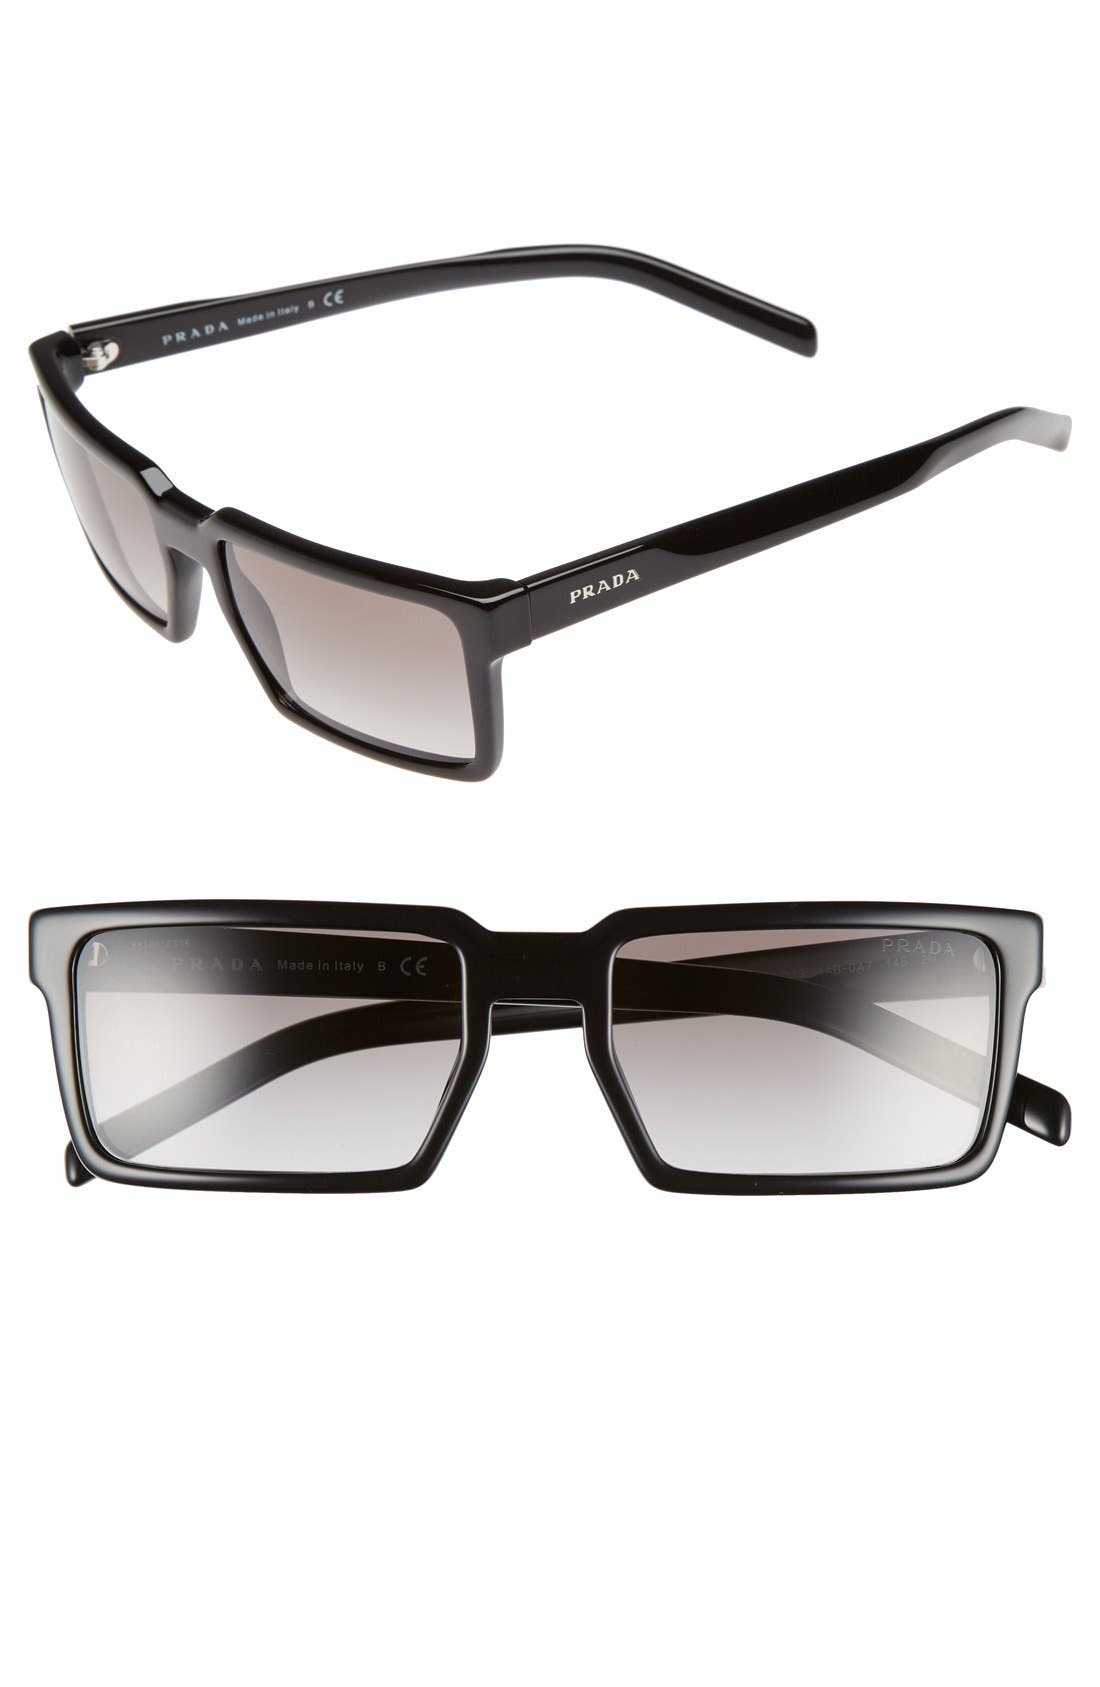 54mm Rectangular Sunglasses,                             Main thumbnail 1, color,                             001